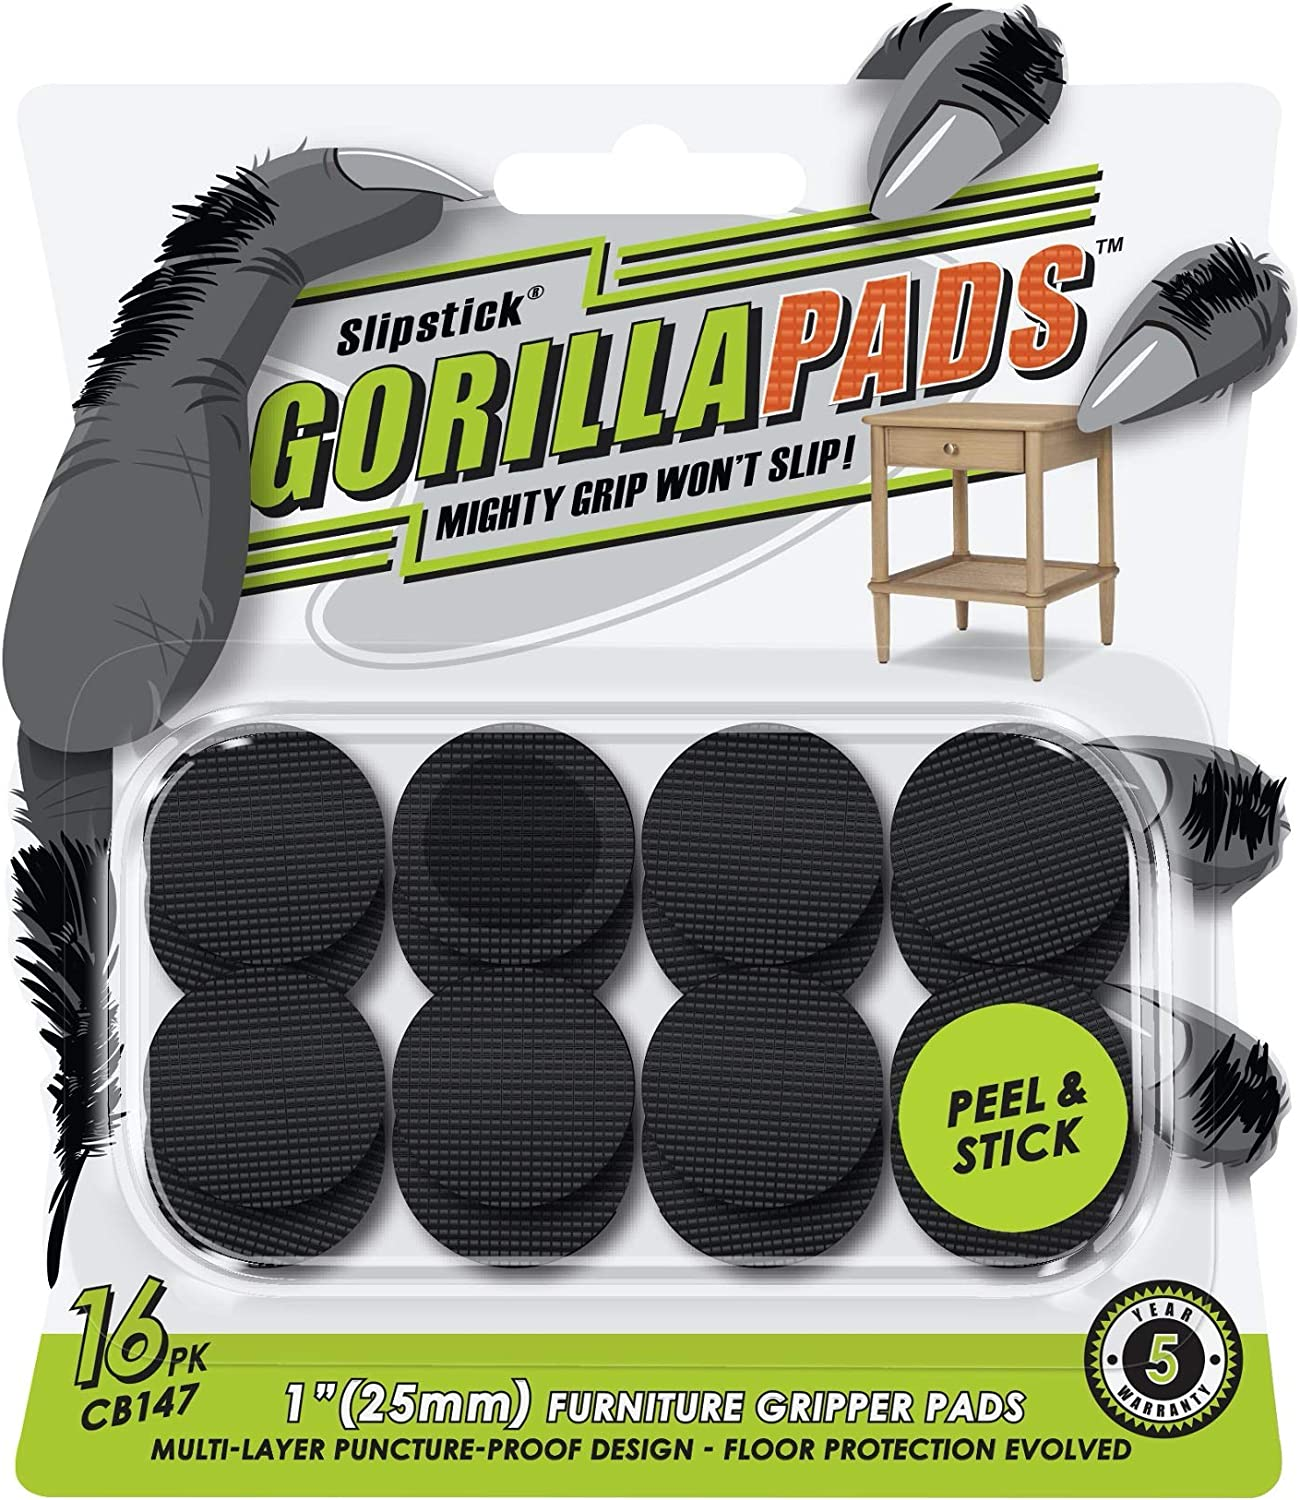 GorillaPads CB147 Non Slip Furniture Pads/Gripper Feet (Set of 16) Self Adhesive Rubber Floor Protectors, 1 inch Round, Black